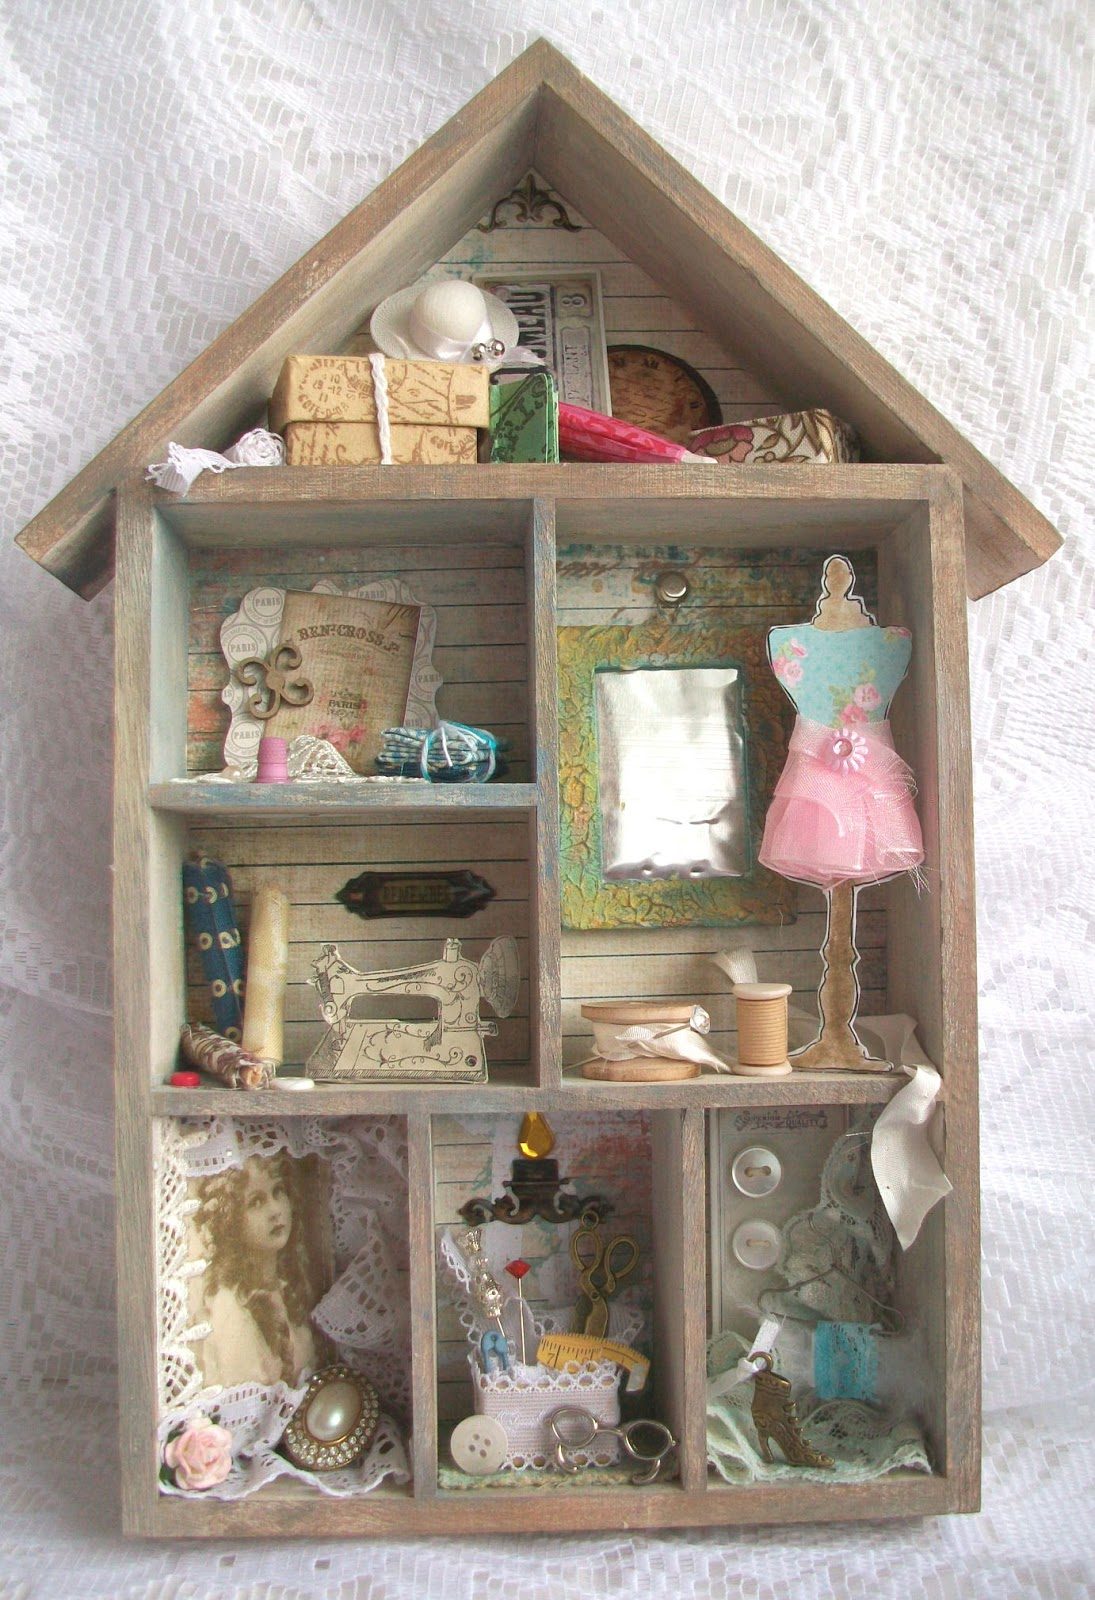 Viv 39 s visuals a visit to grandma 39 s house shabby chic for Wedding dress shadow box for sale